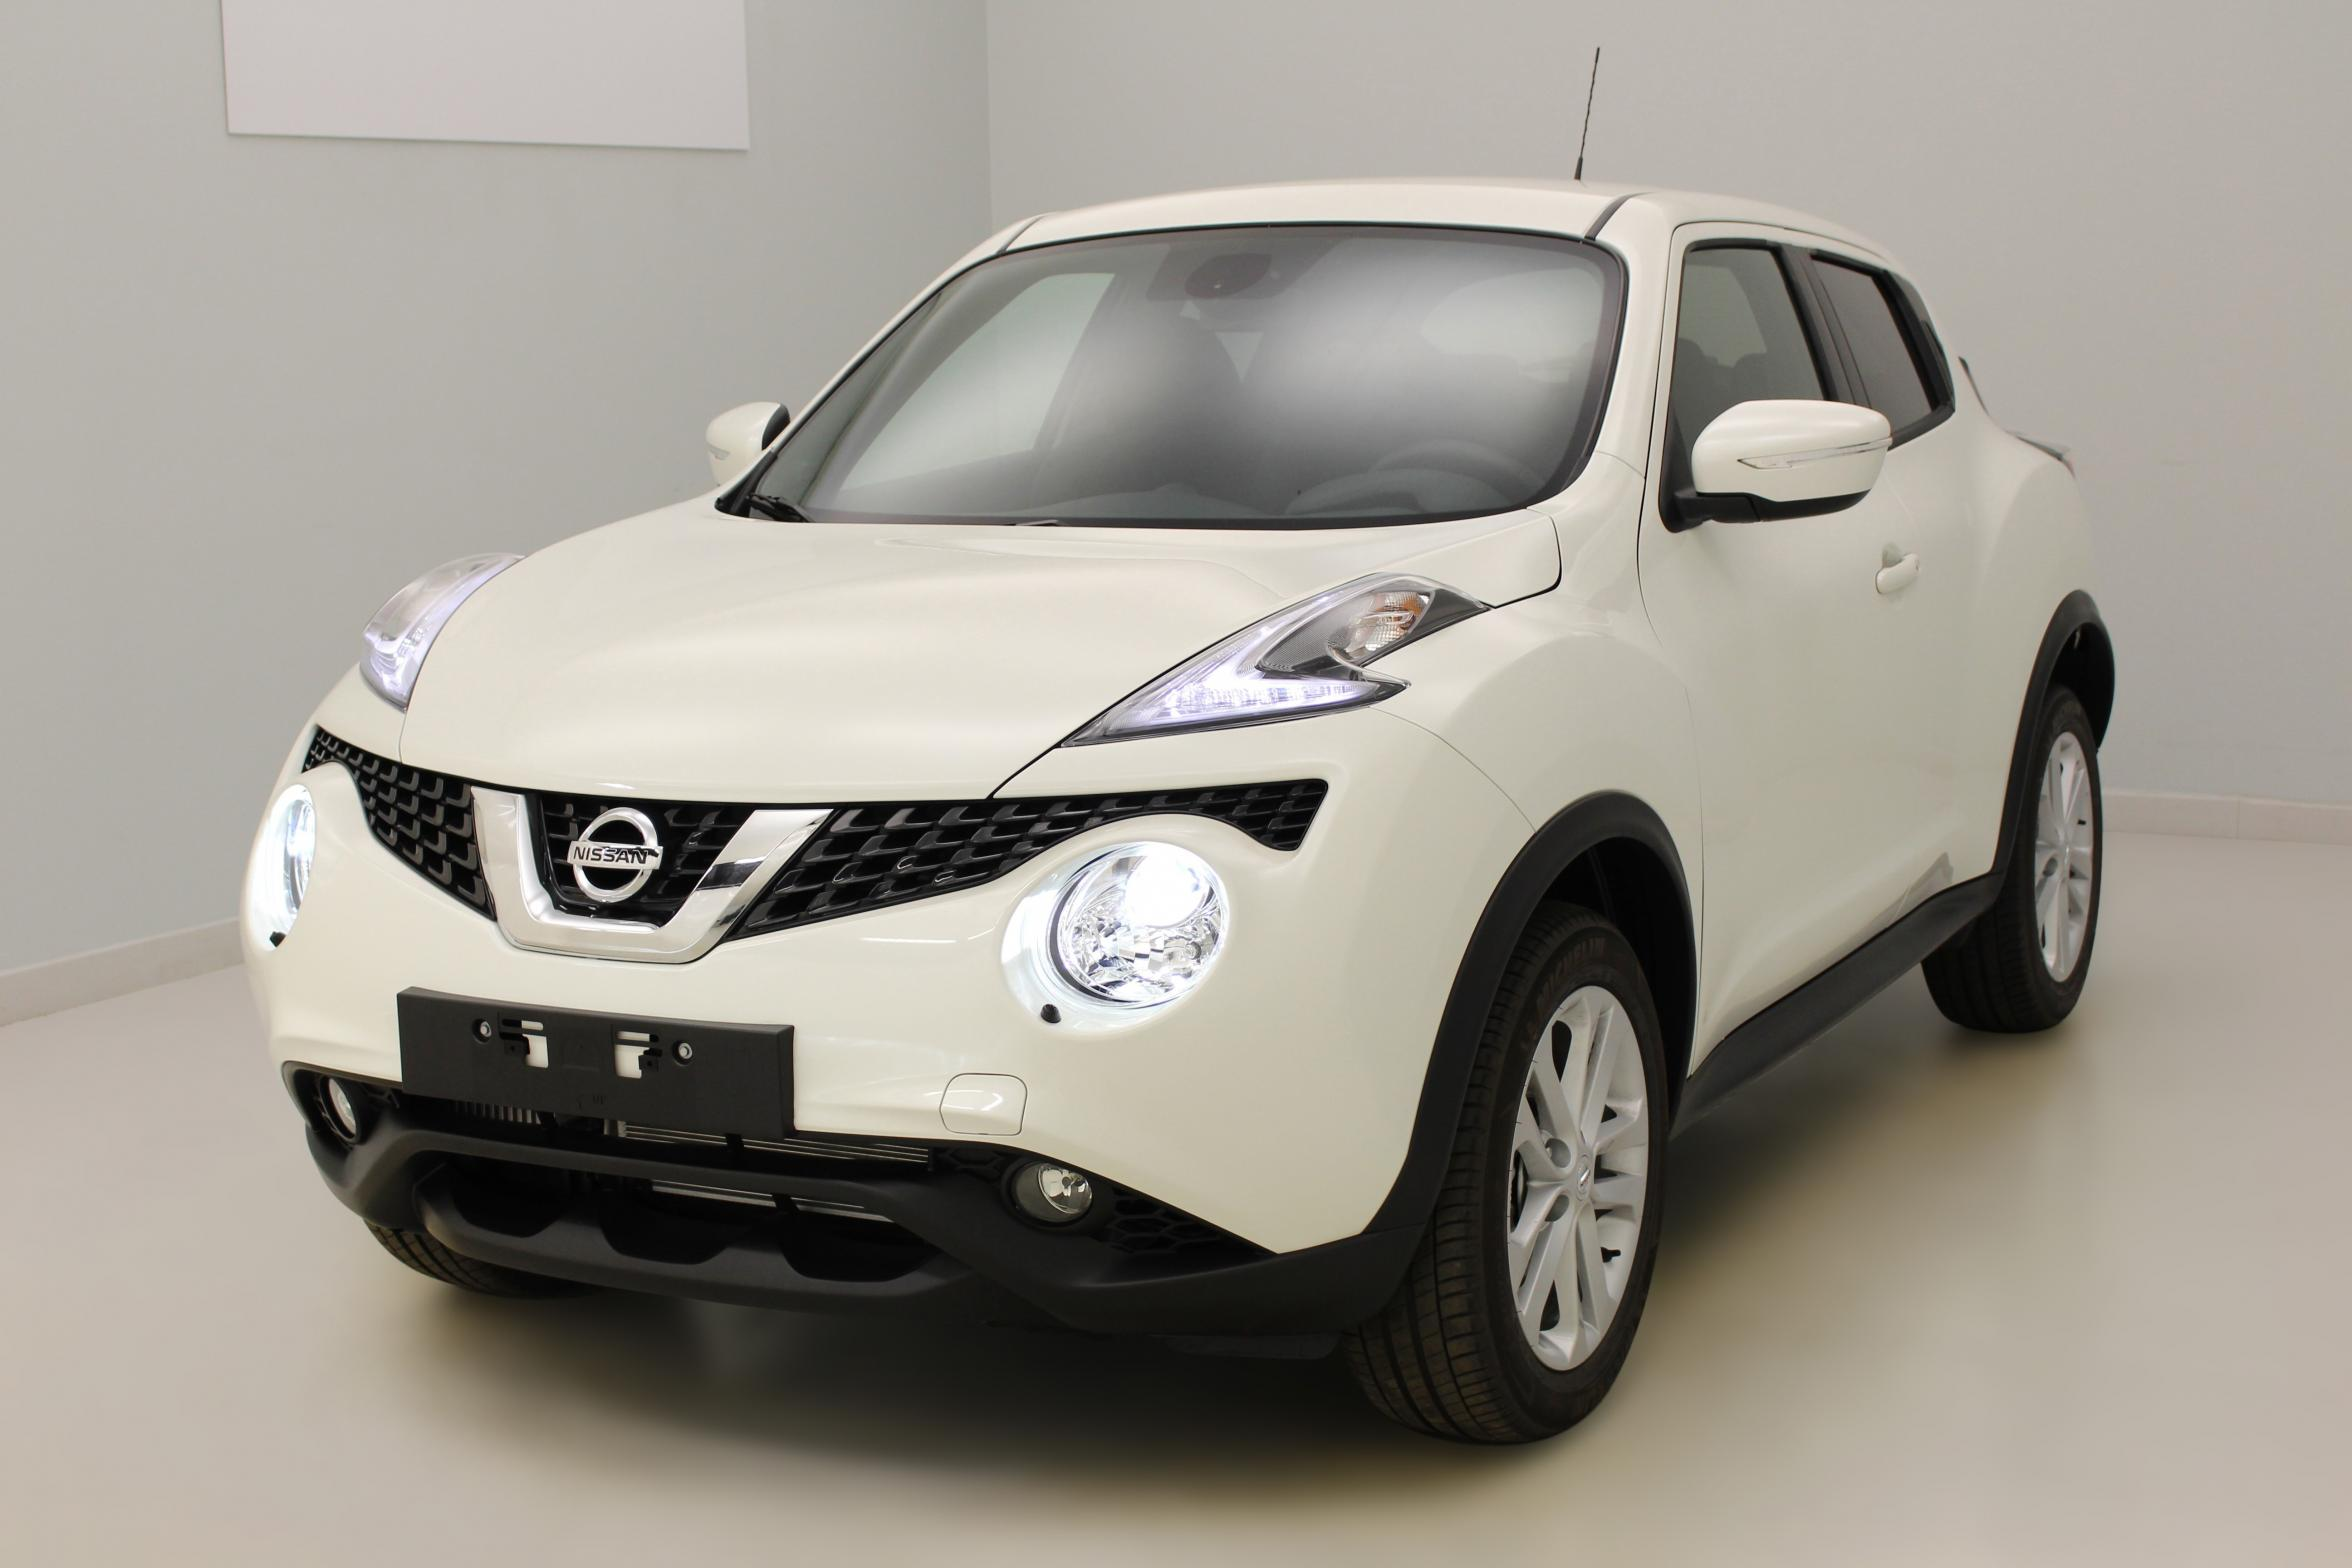 nissan juke blanc nissan juke 1 5 dci 110ch connect edition occasion lyon s r zin rh ne ora7. Black Bedroom Furniture Sets. Home Design Ideas